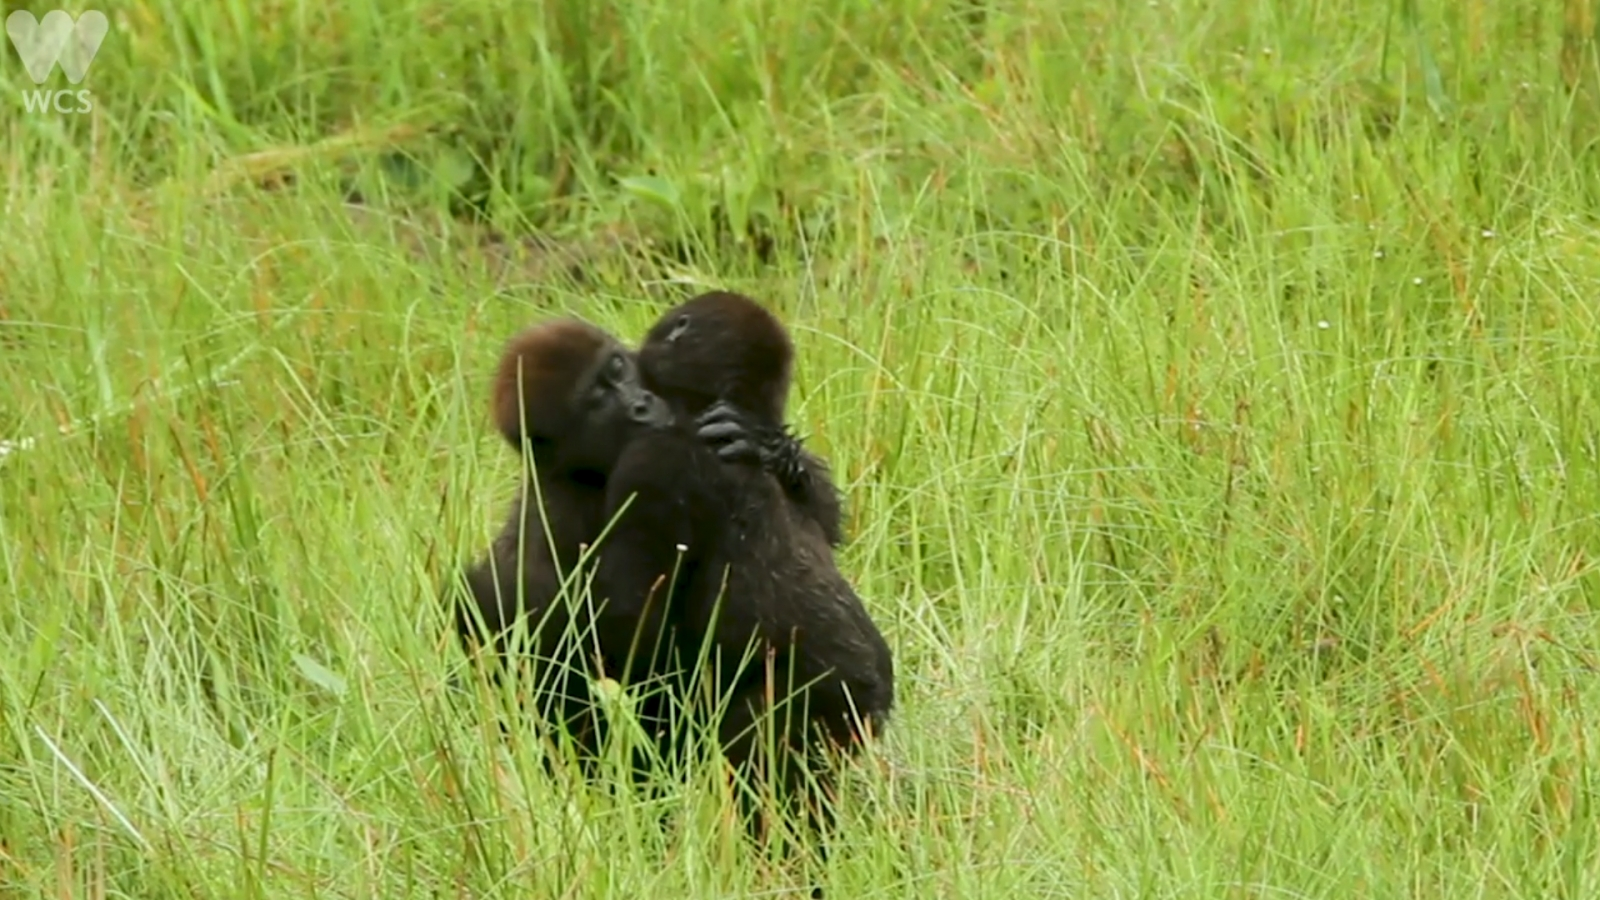 young-gorillas-captured-on-in-tender-embrace